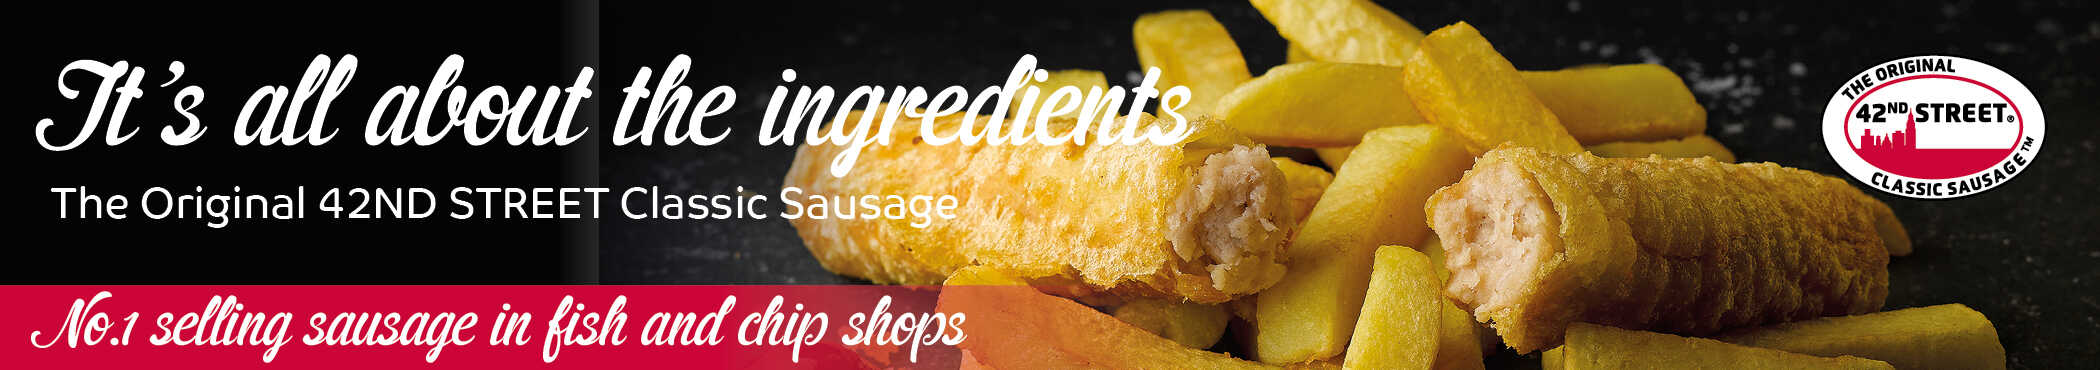 42nd Street Classic Battered Sausage